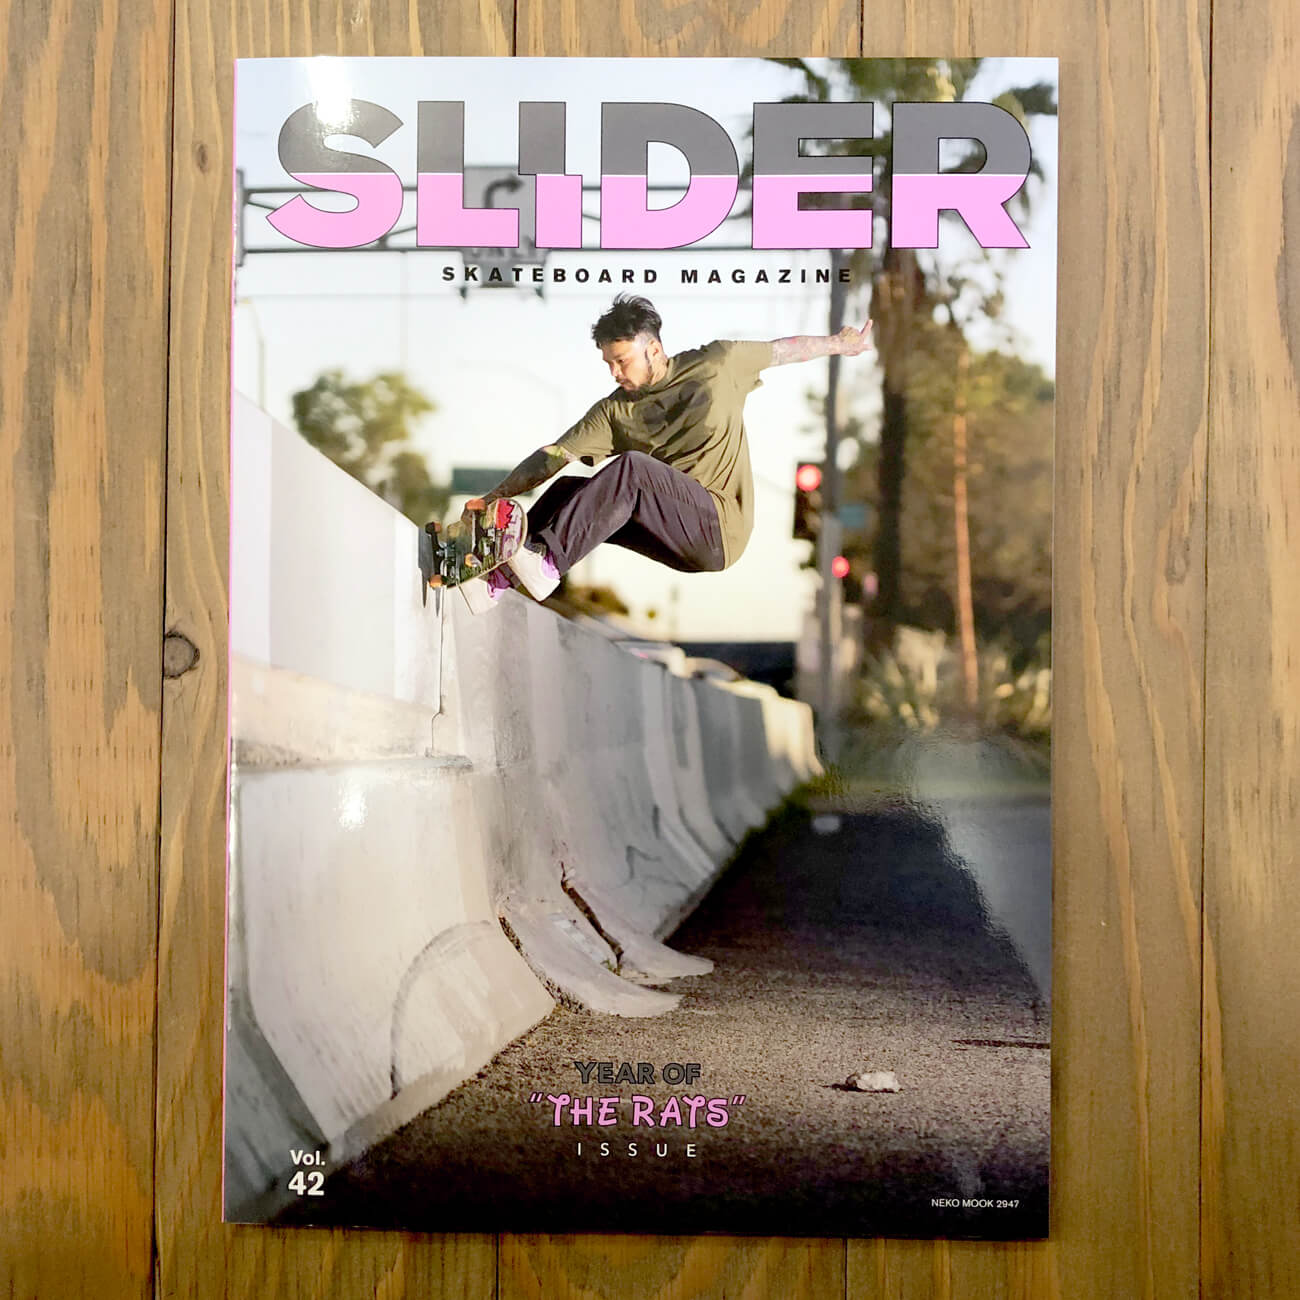 SLIDER MAGAZINE VOL.42